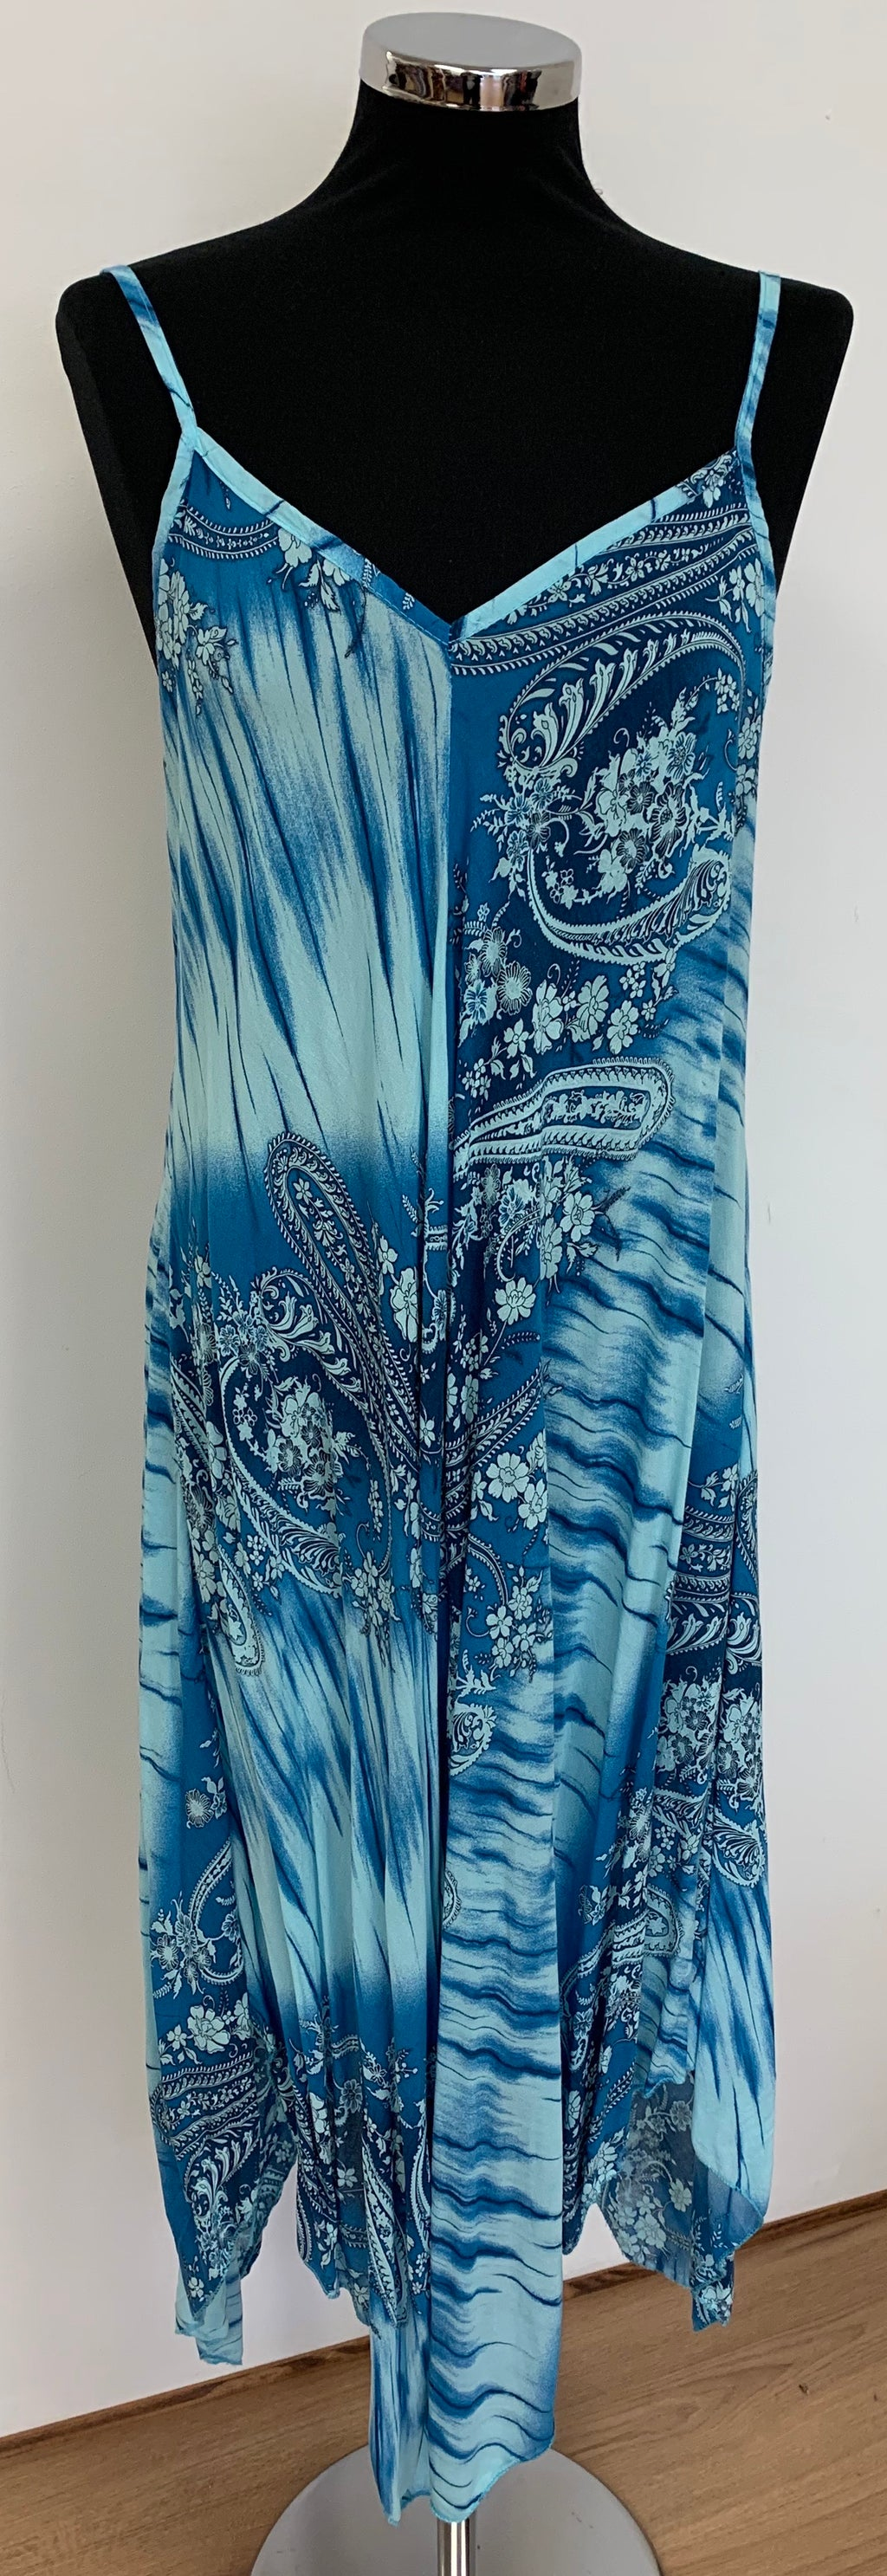 Classic Handkerchief Style Turquoise Maxi Dress - Blue Paisley Print